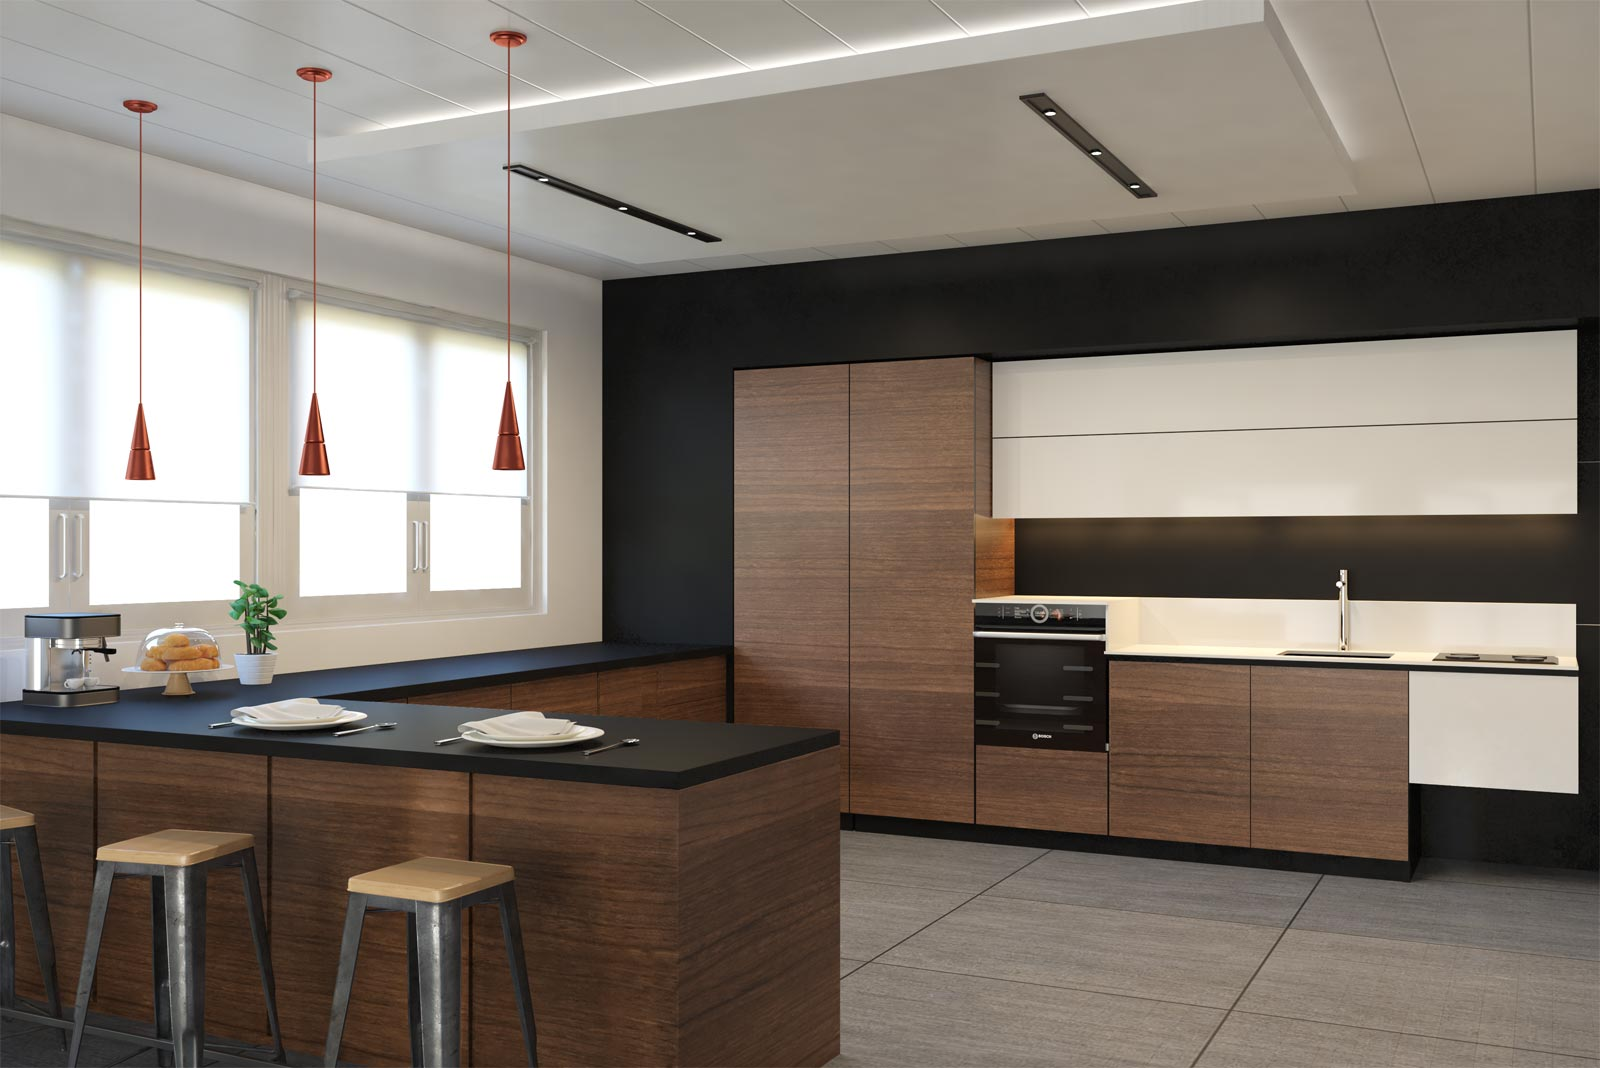 Cucina Moderna White Replace Design Modern Kitchen Furnishing On The Move